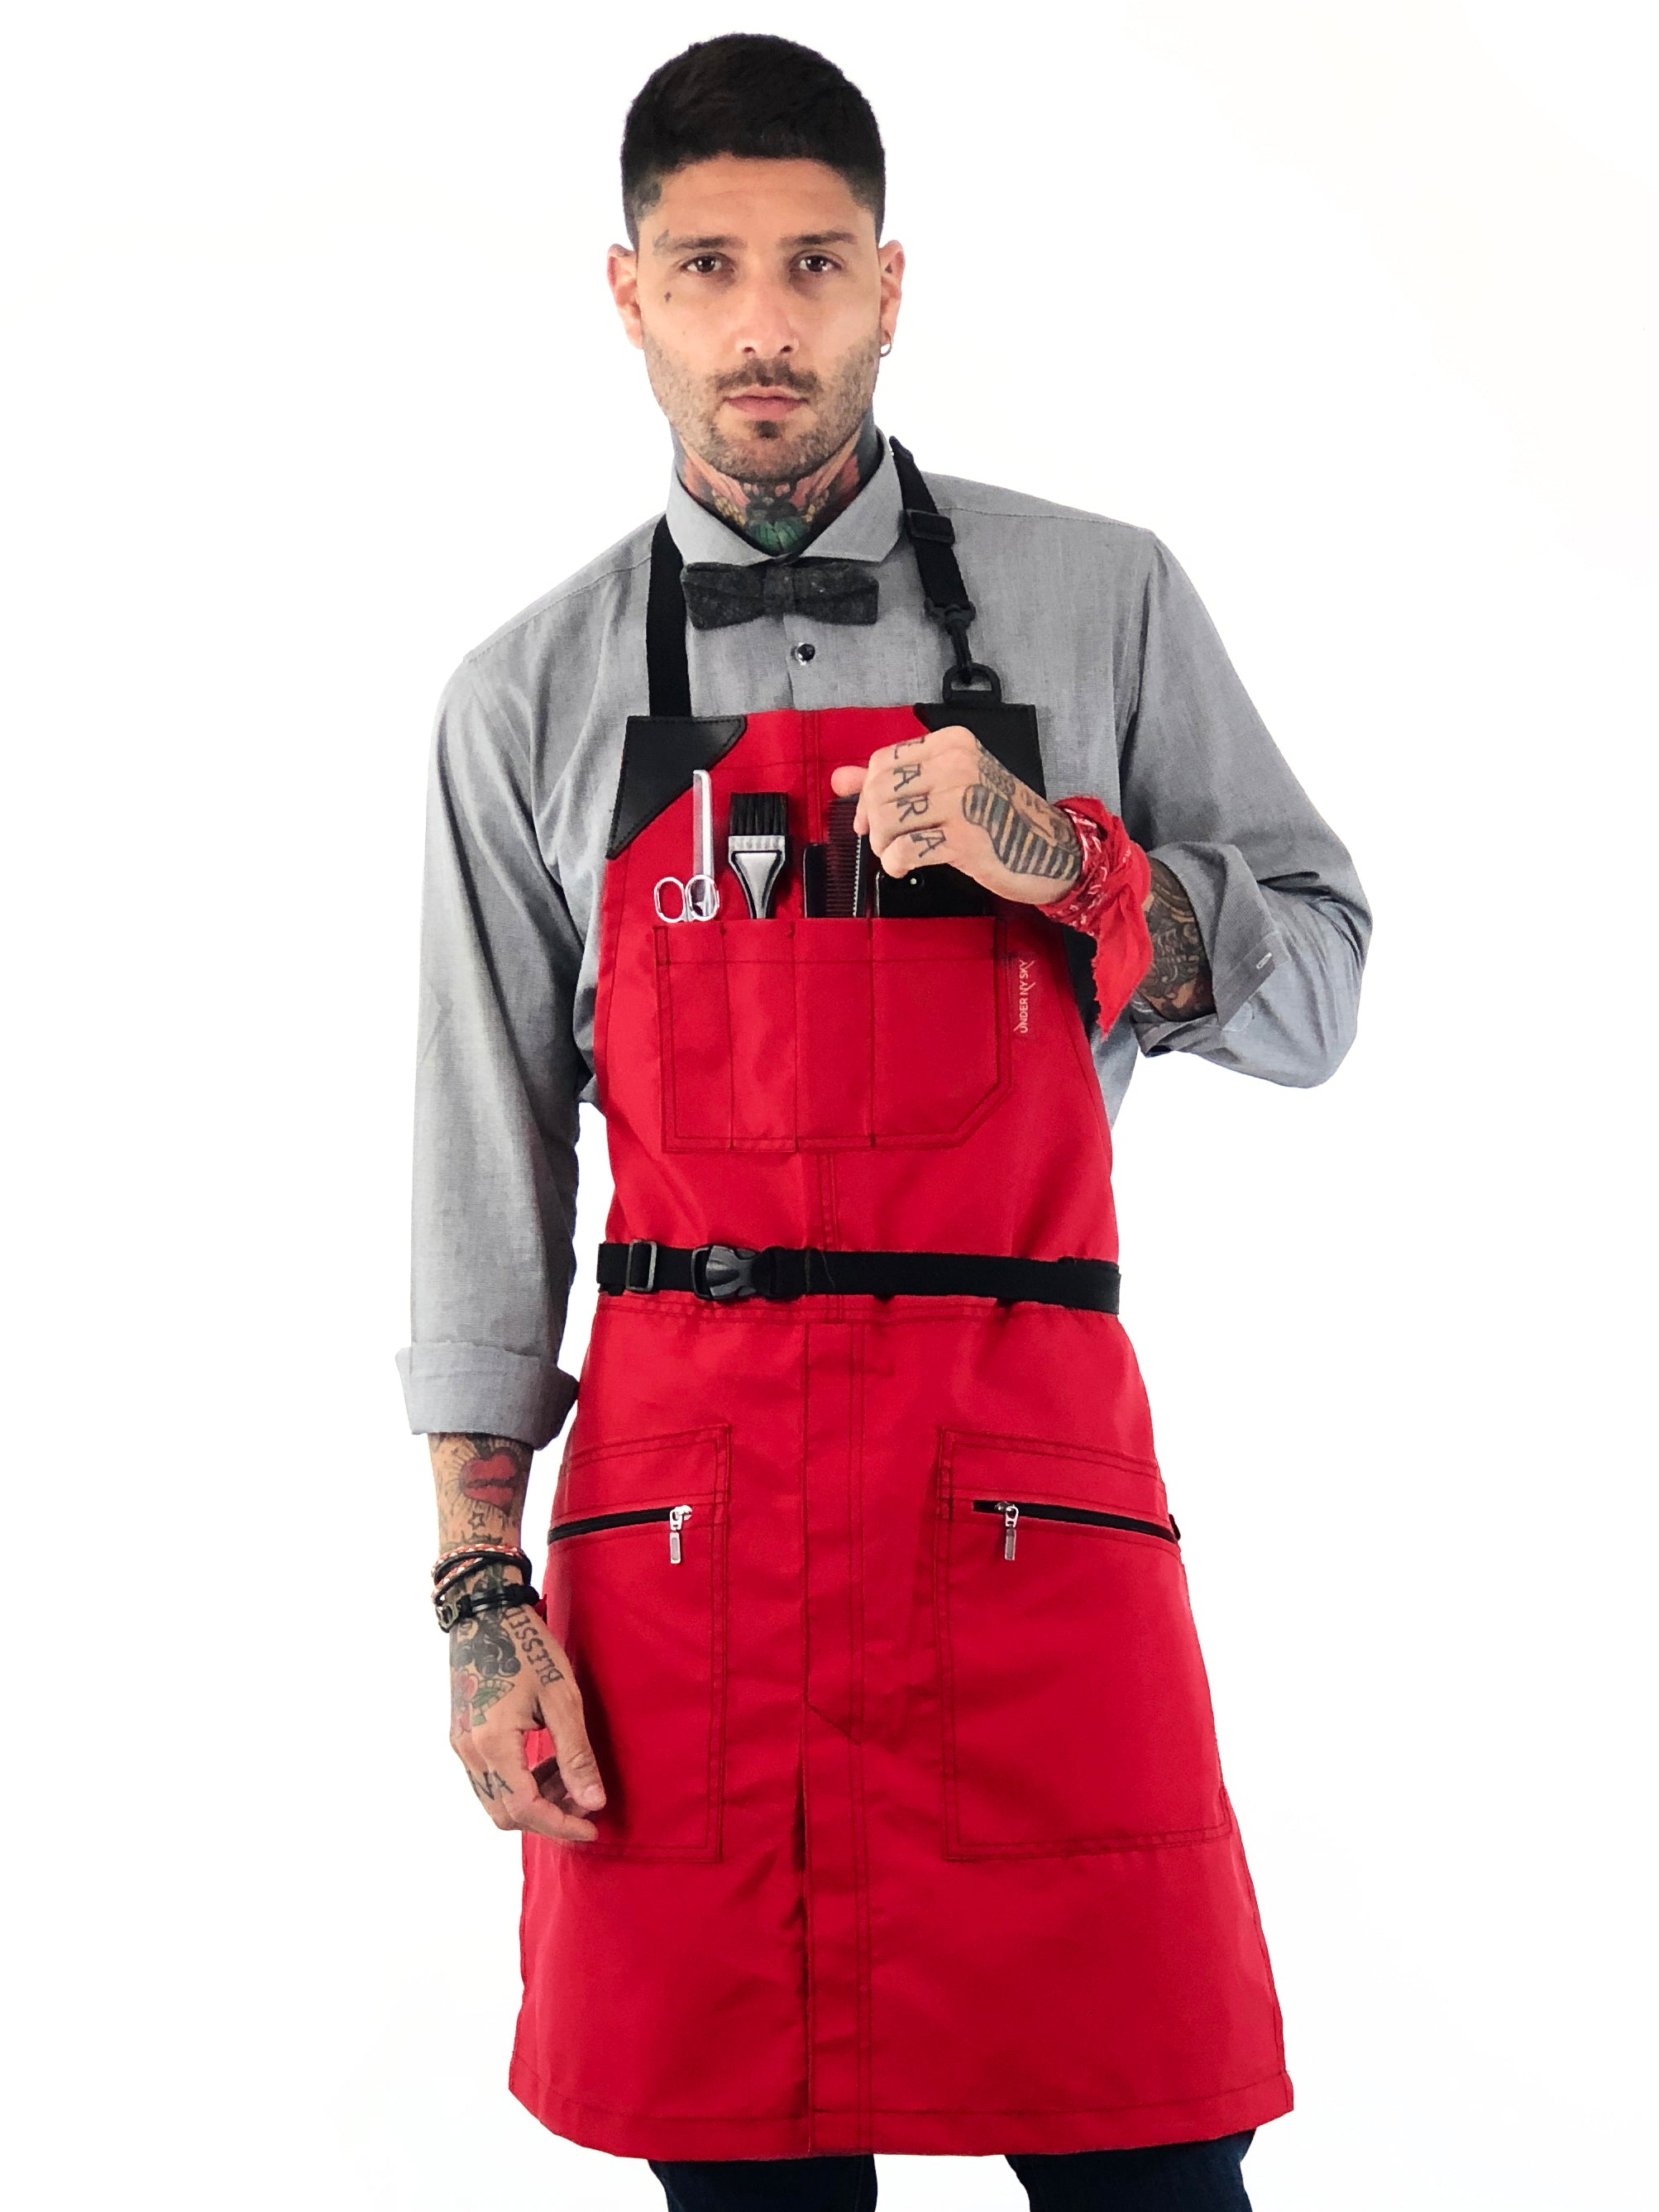 Barber Chemical Waterproof No-Tie Apron - Red Oxford Canvas